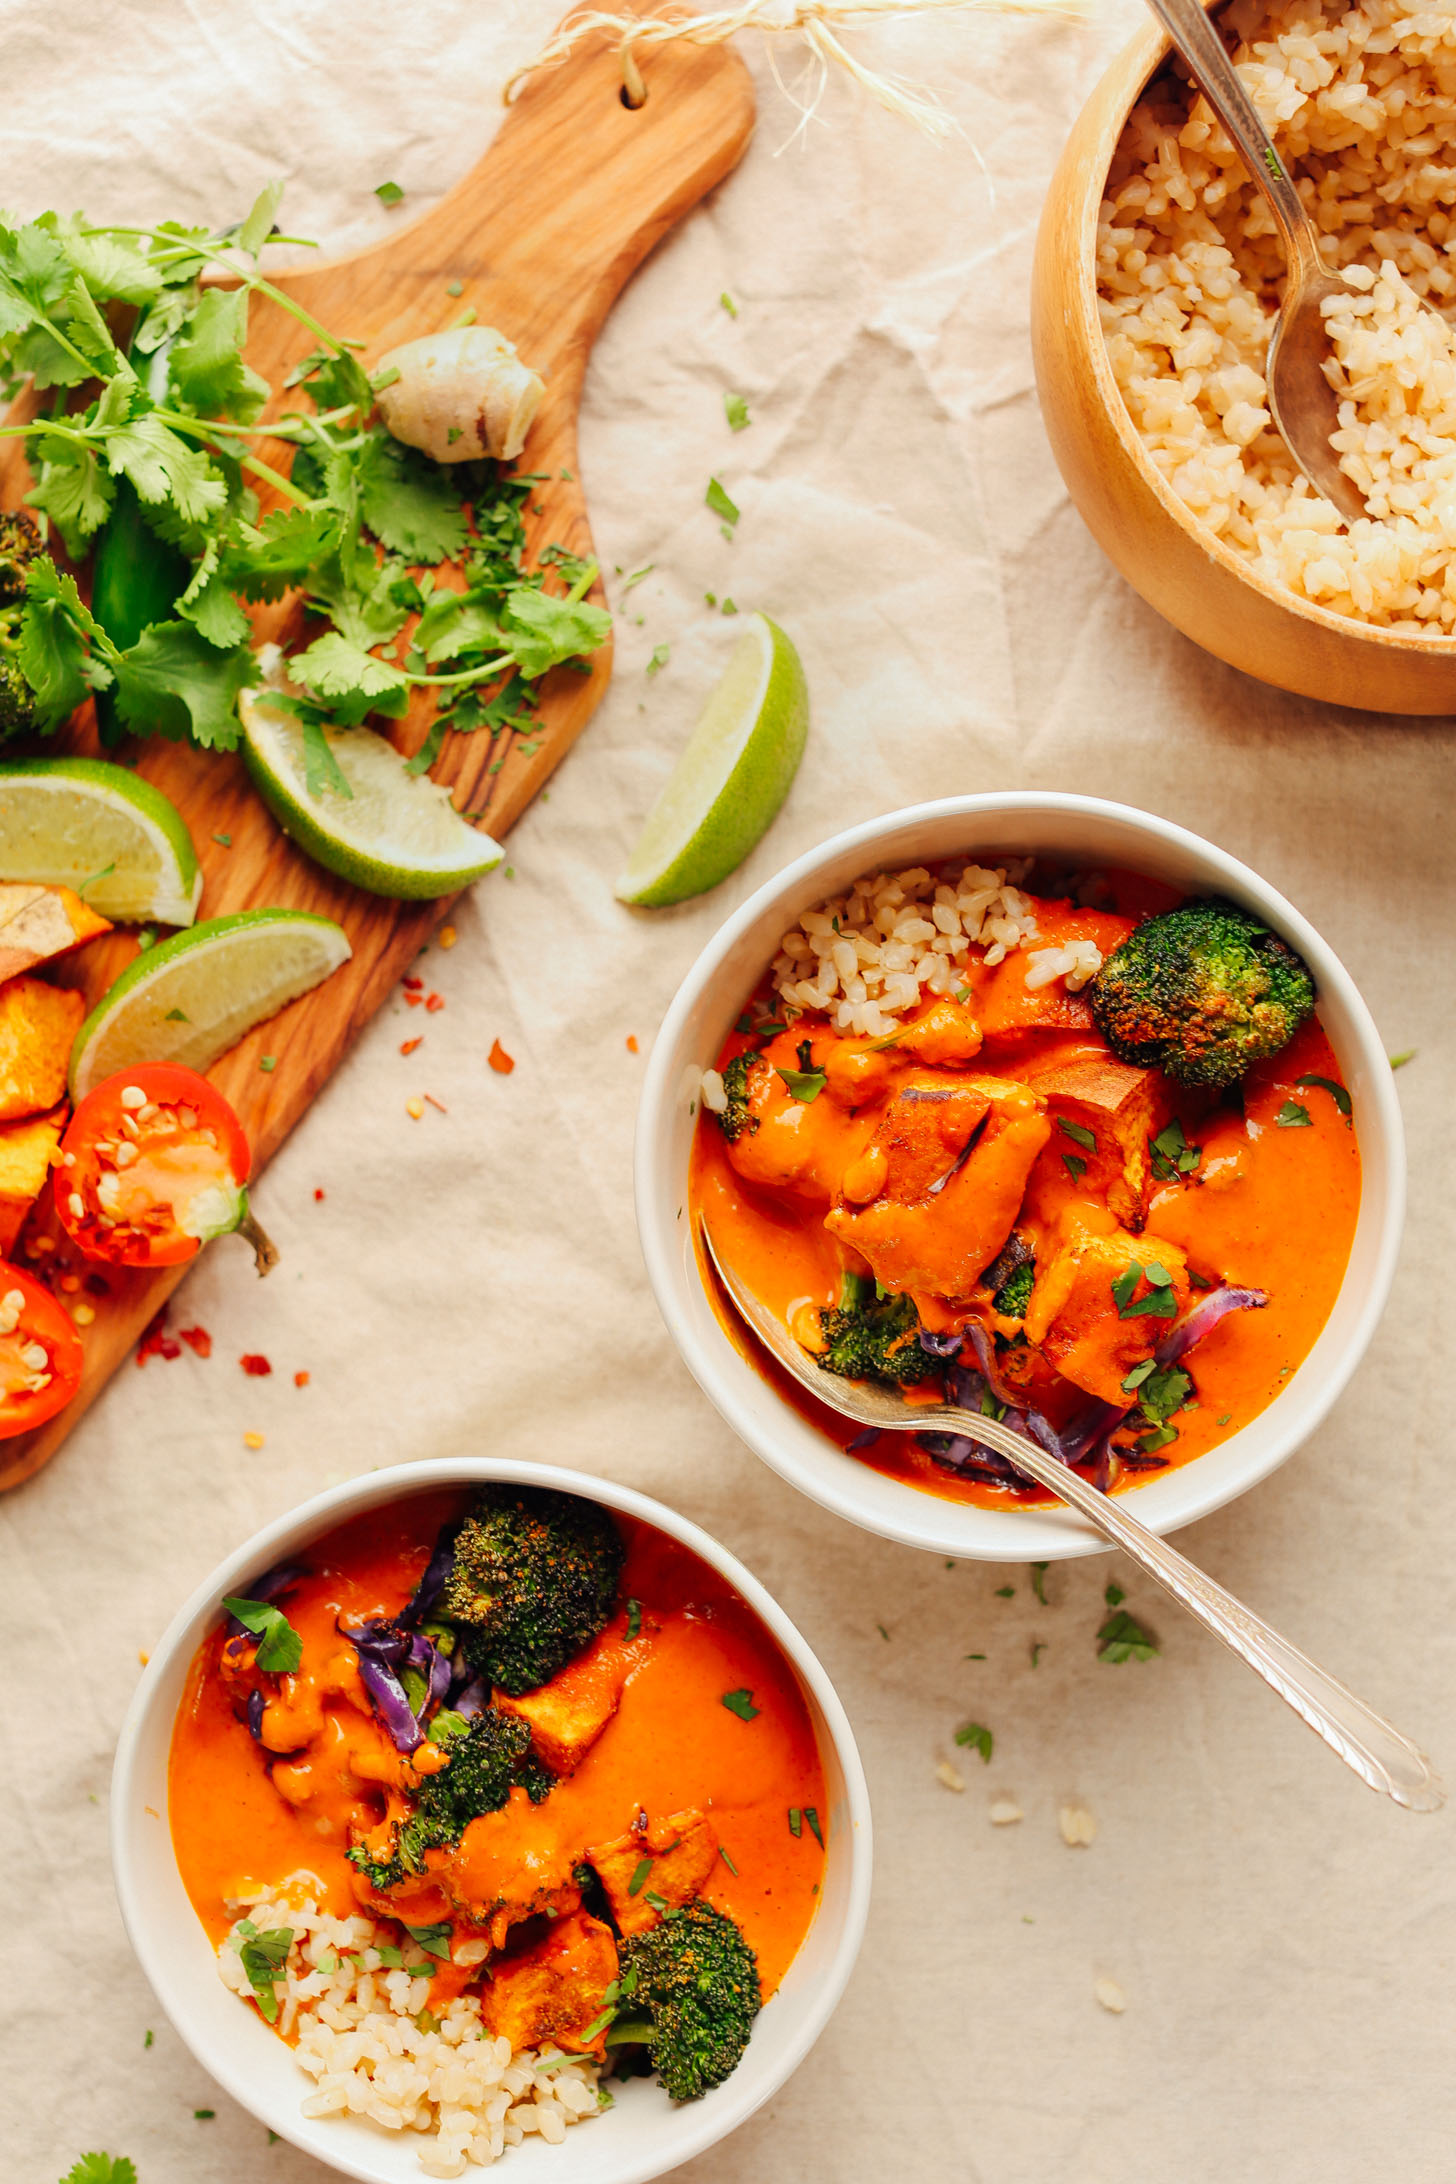 Two bowls of Rich Red Curry served with rice and fresh garnishes of lime and cilantro